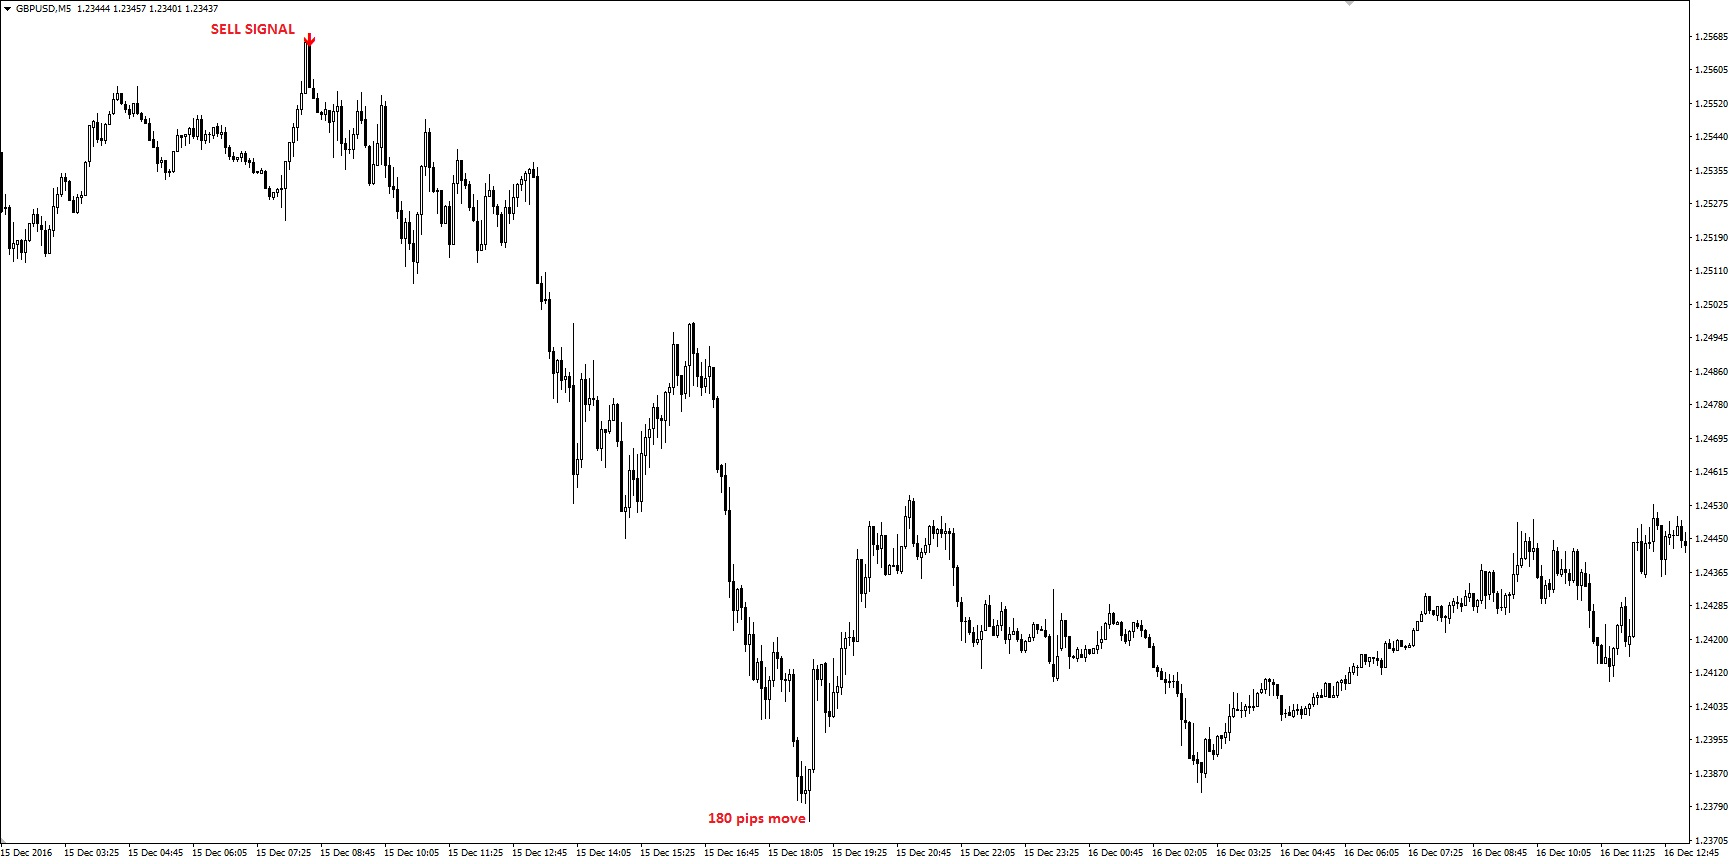 Forex Holy Grail: High WinRate Buy/Sell Arrow Signal Non Repaint